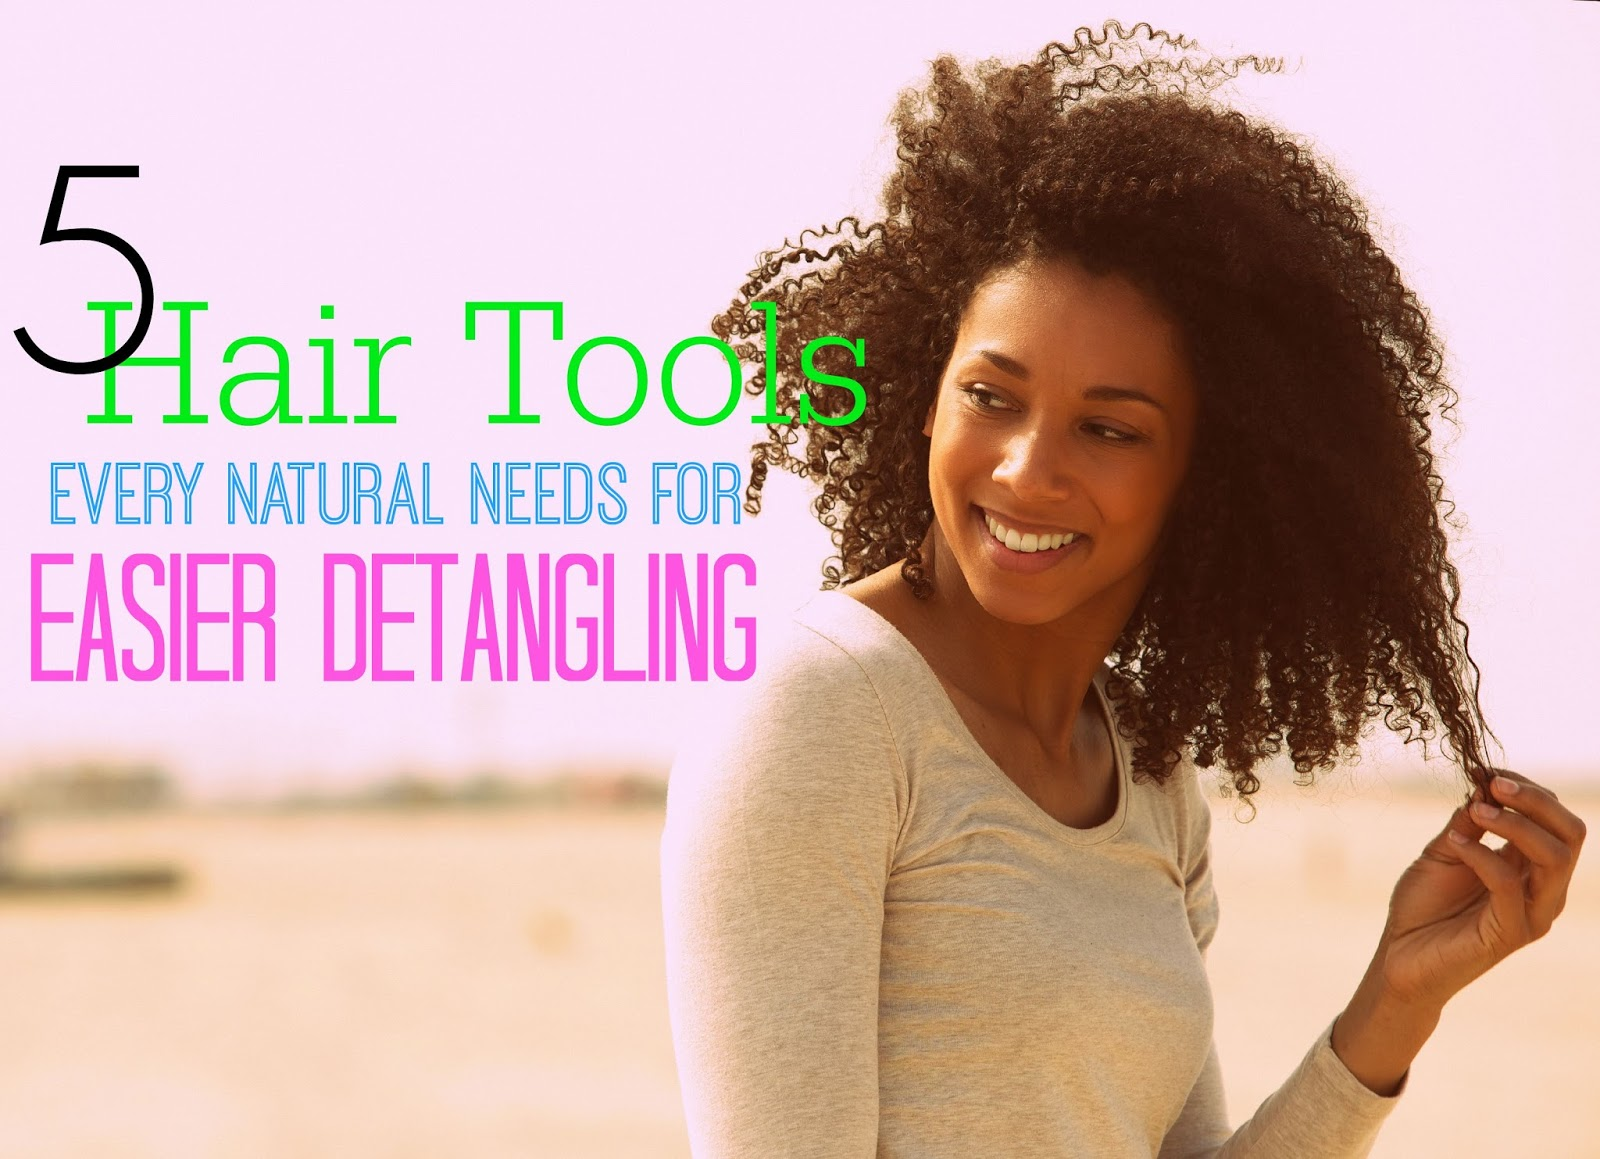 5 Hair Tools Every Natural Needs For Easier Detangling